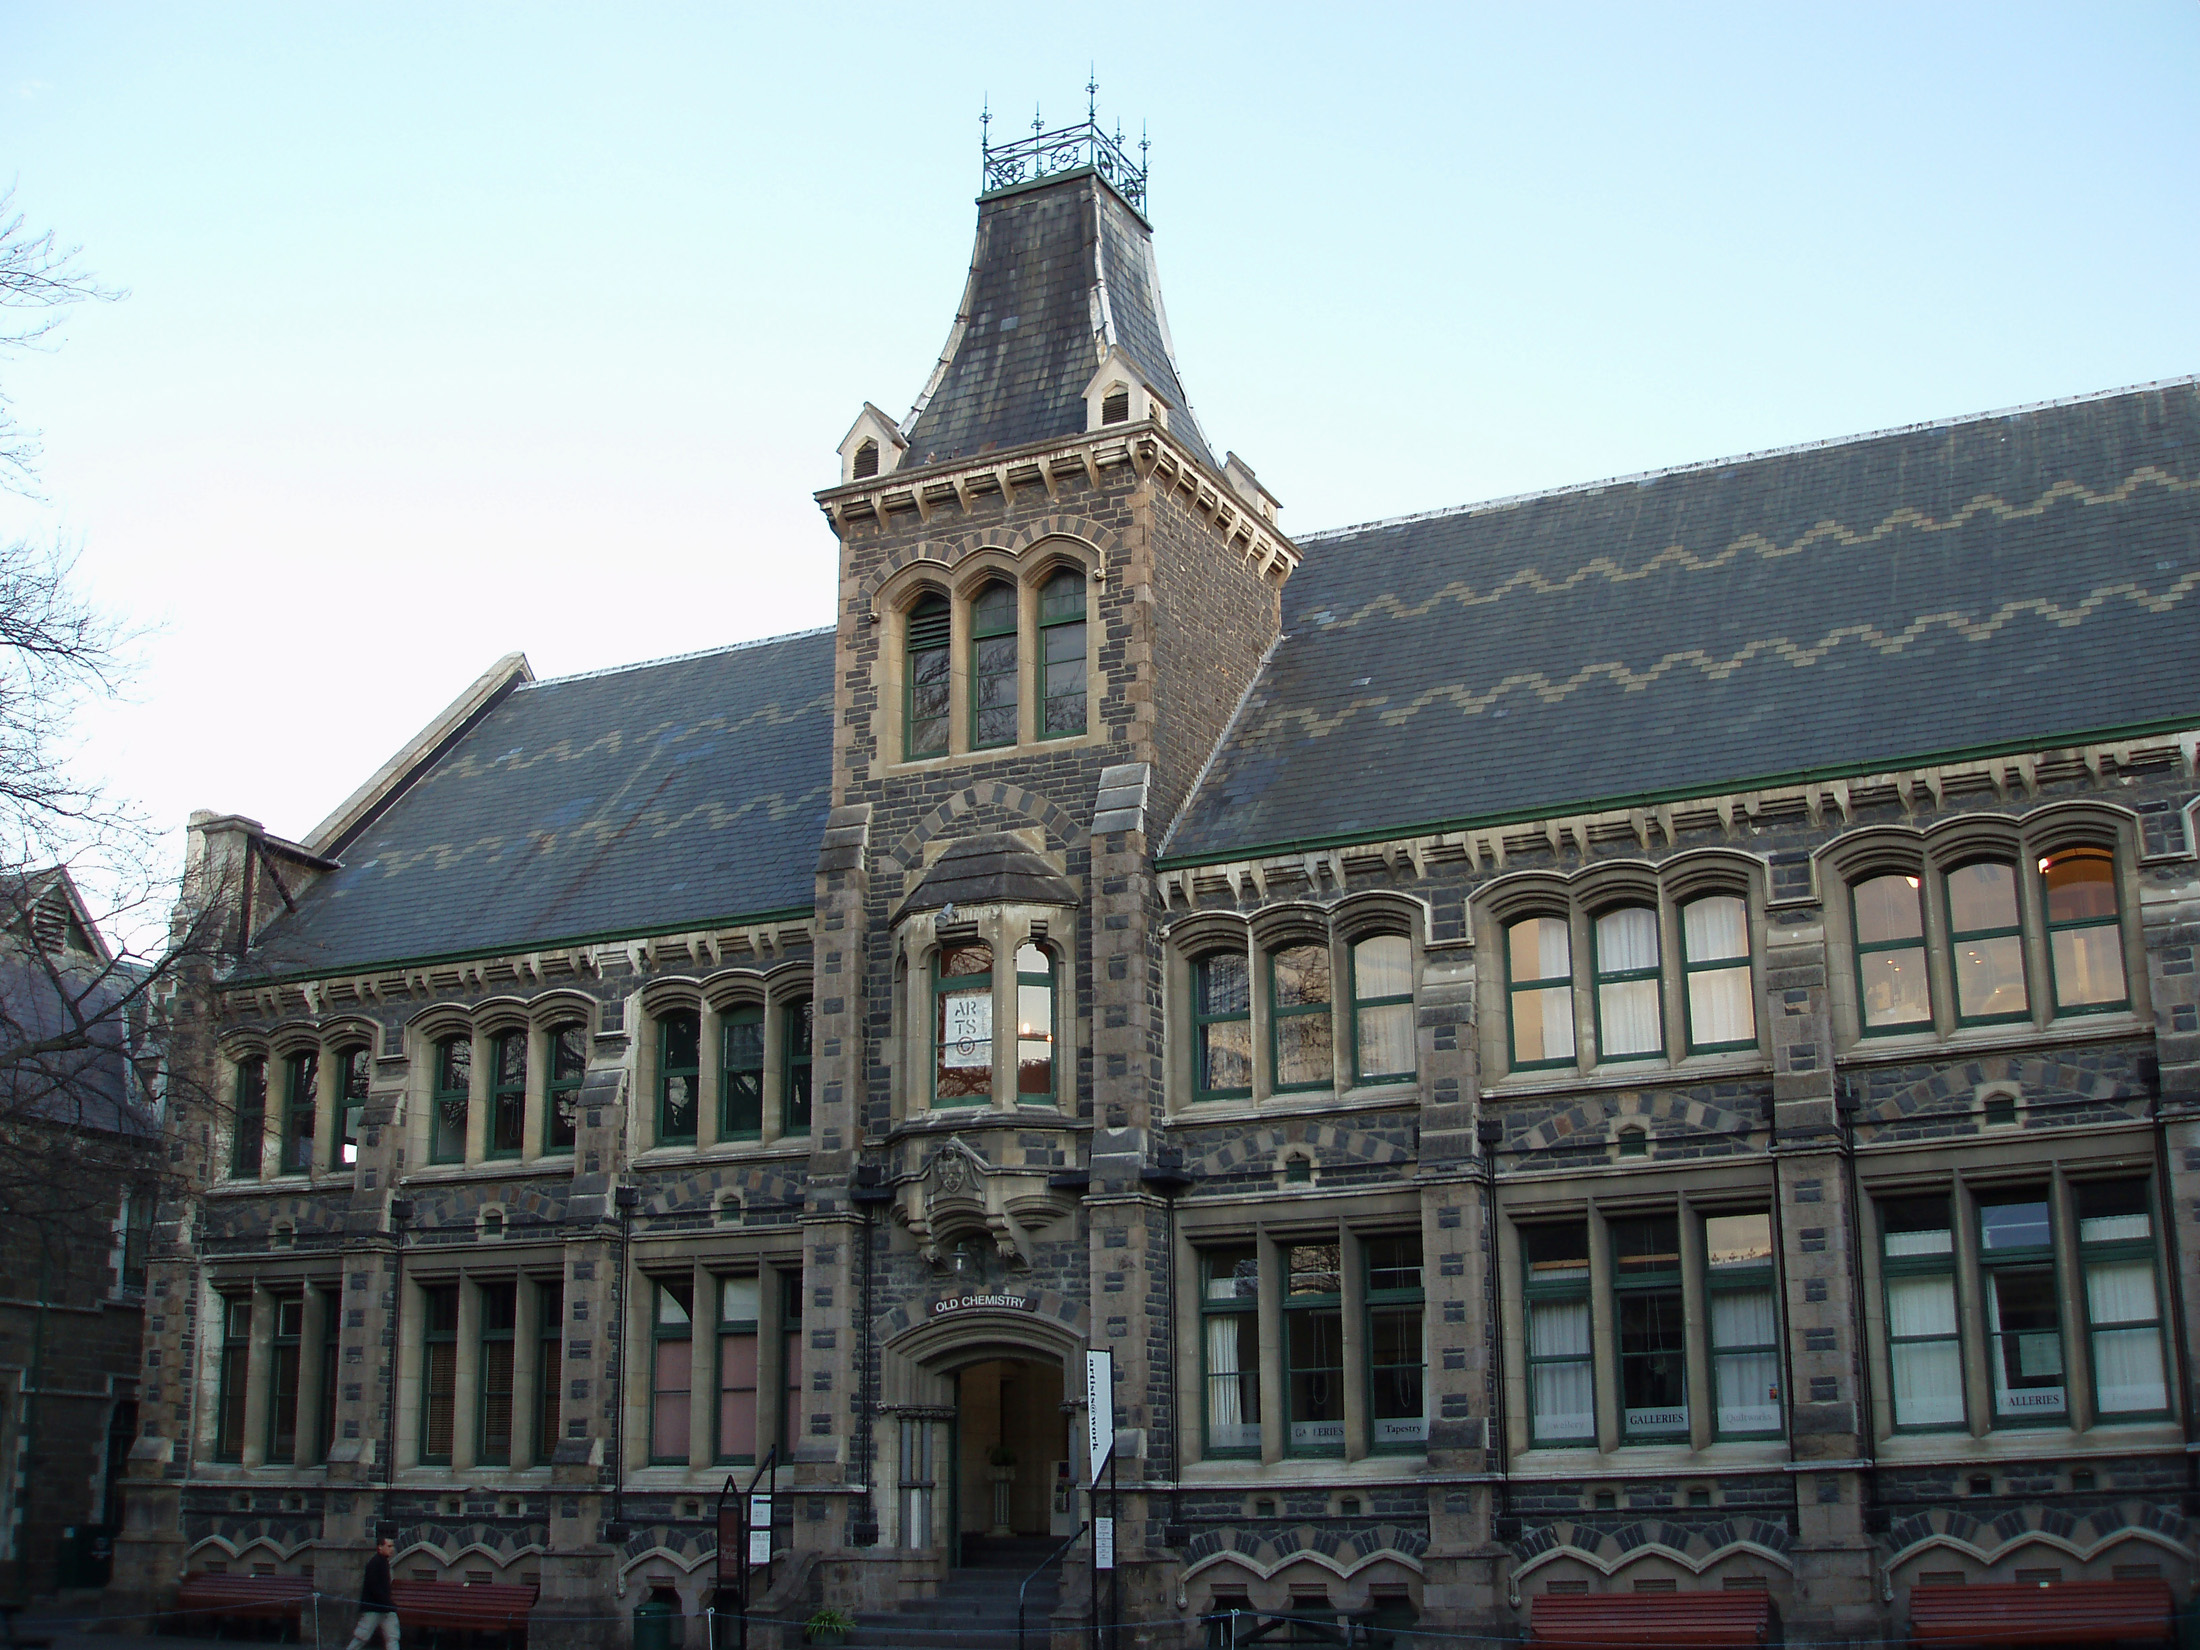 historic former university of canterbury buildings,